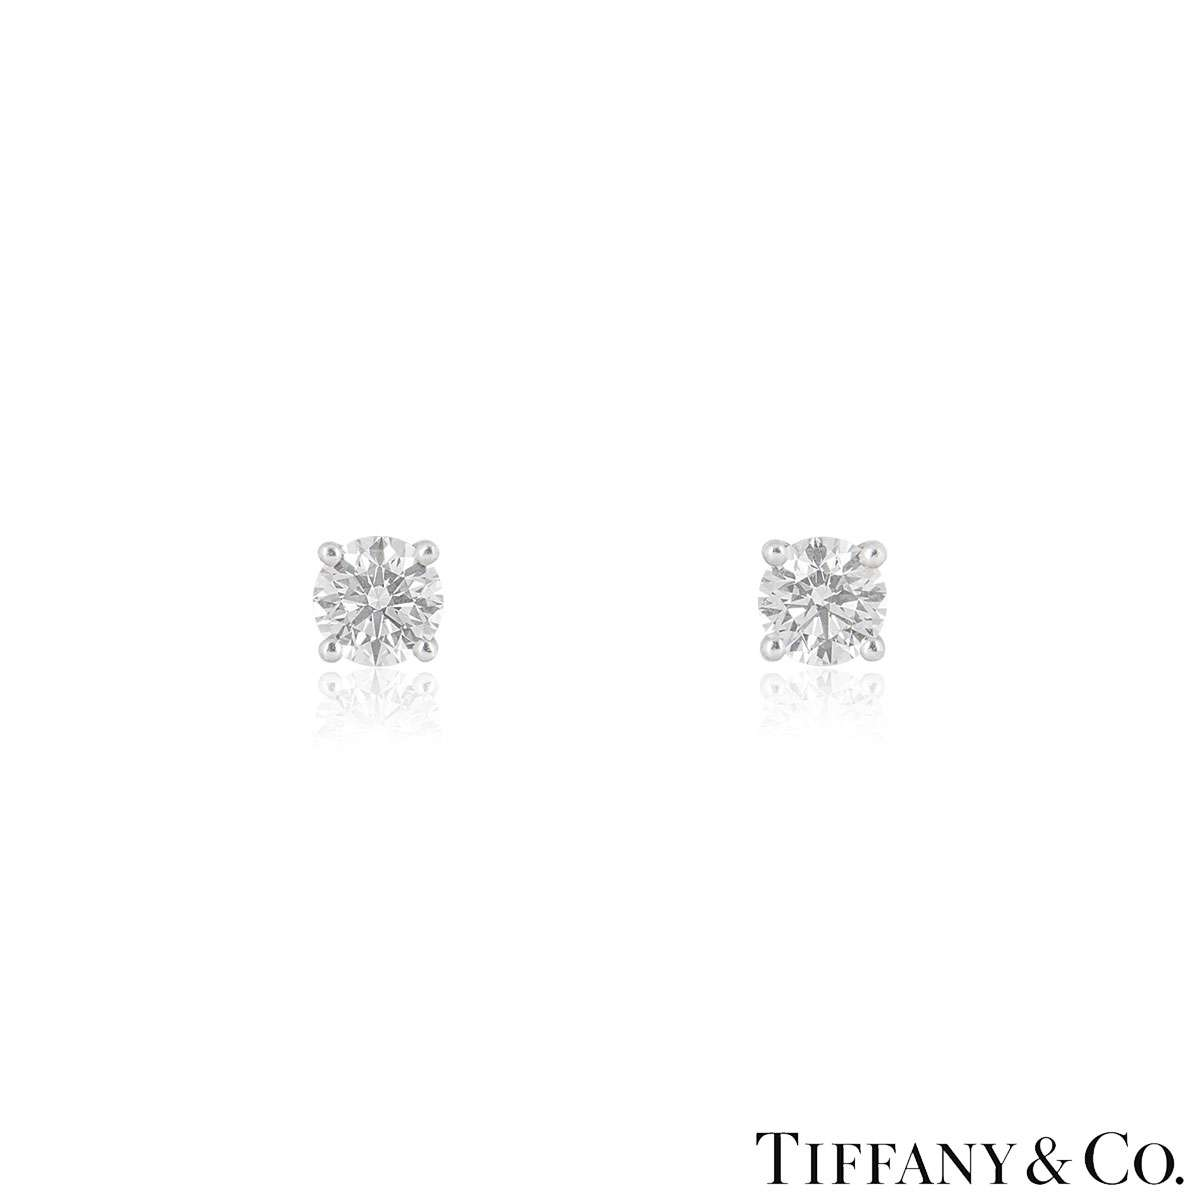 Tiffany & Co. Diamond Platinum Stud Earrings XXX 2.02ct TDW